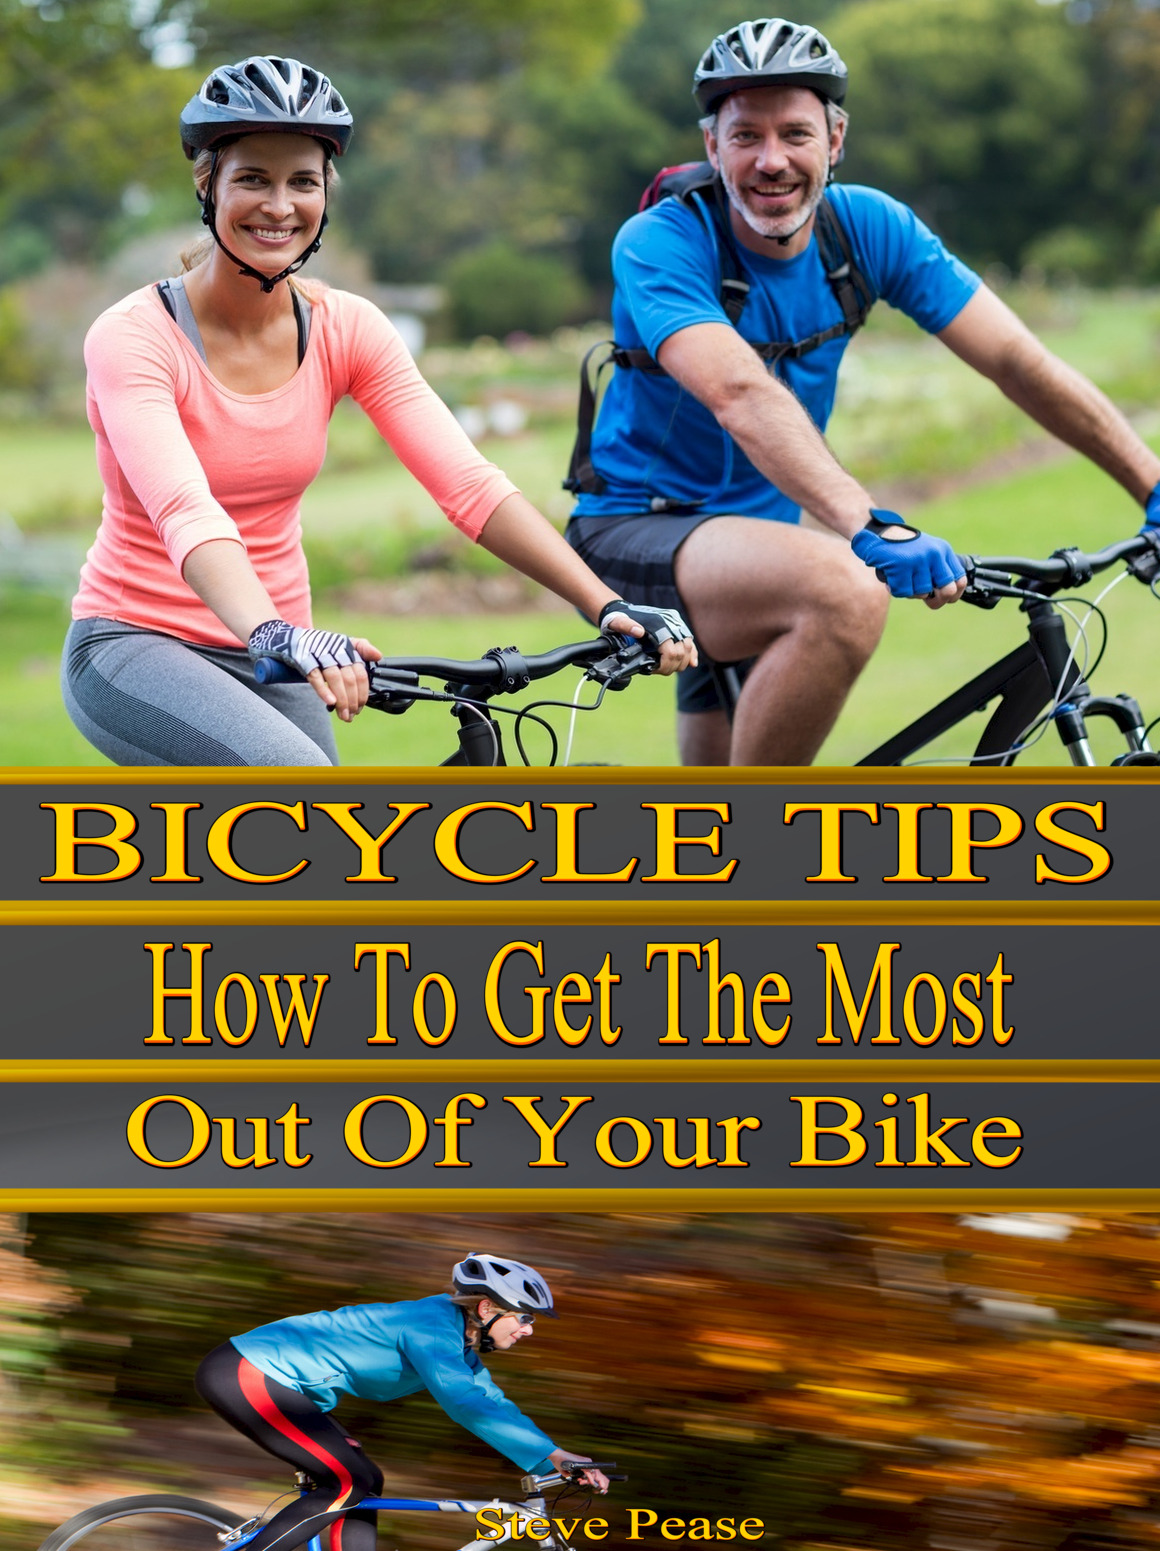 BICYCLING TIPS